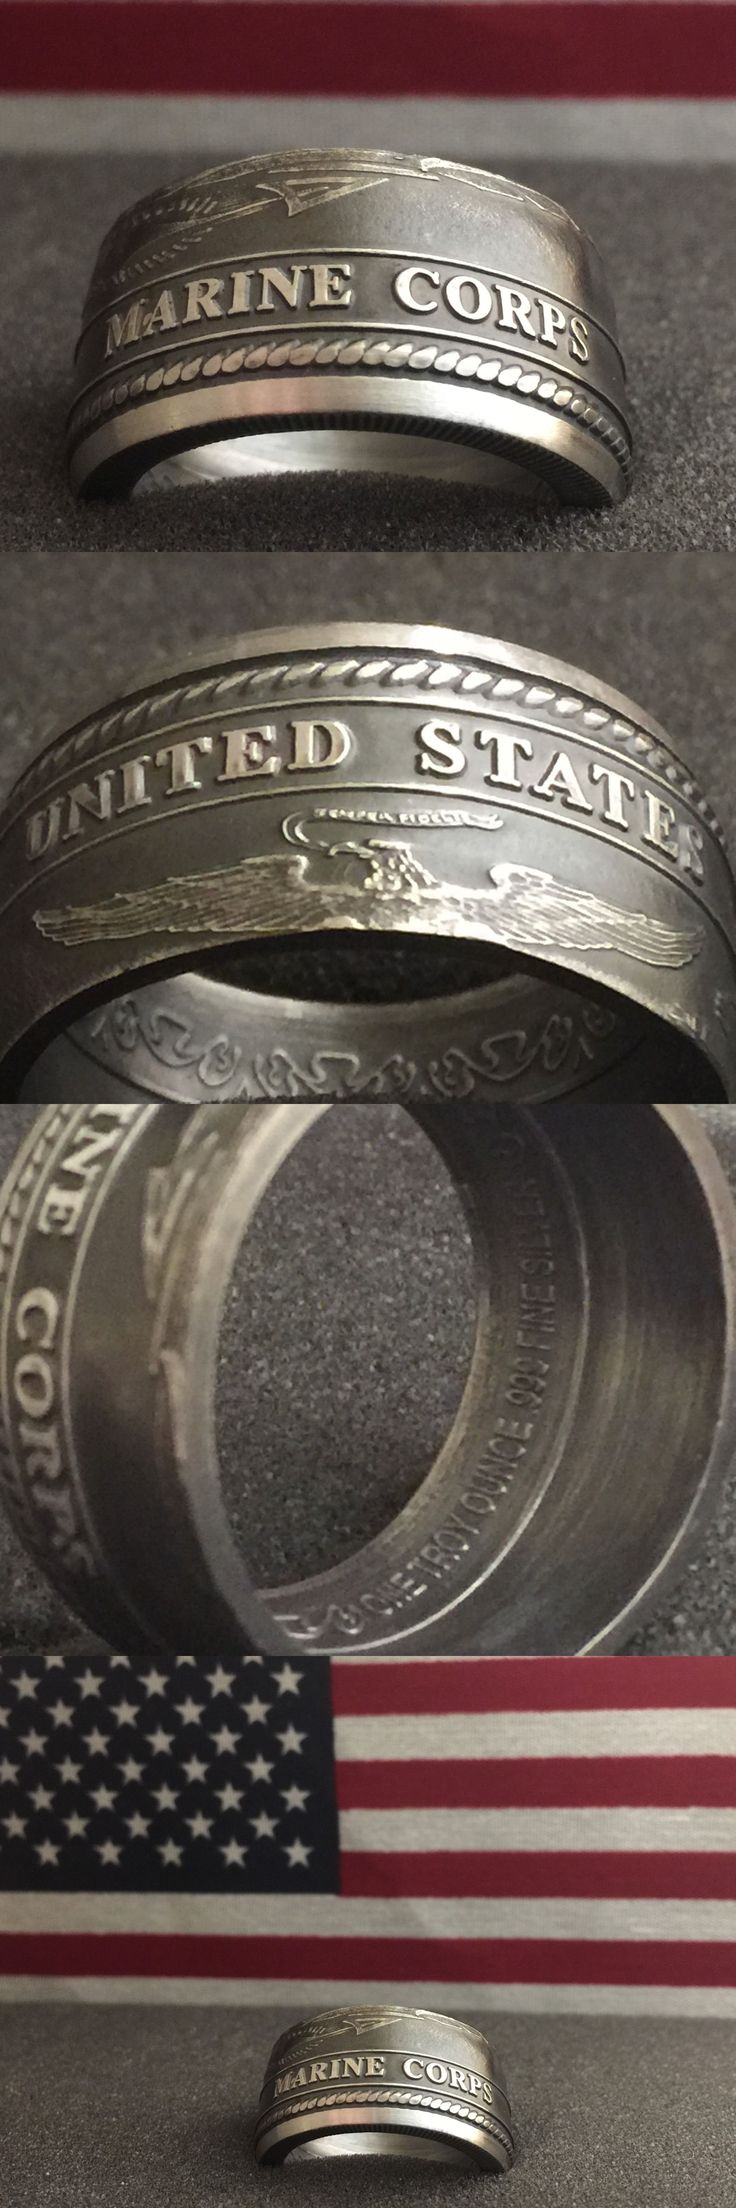 Rings 110666: 24K Pure Silver Coin Ring | Us Marine Corps | Sizes 5-15 -> BUY IT NOW ONLY: $85.0 on eBay!